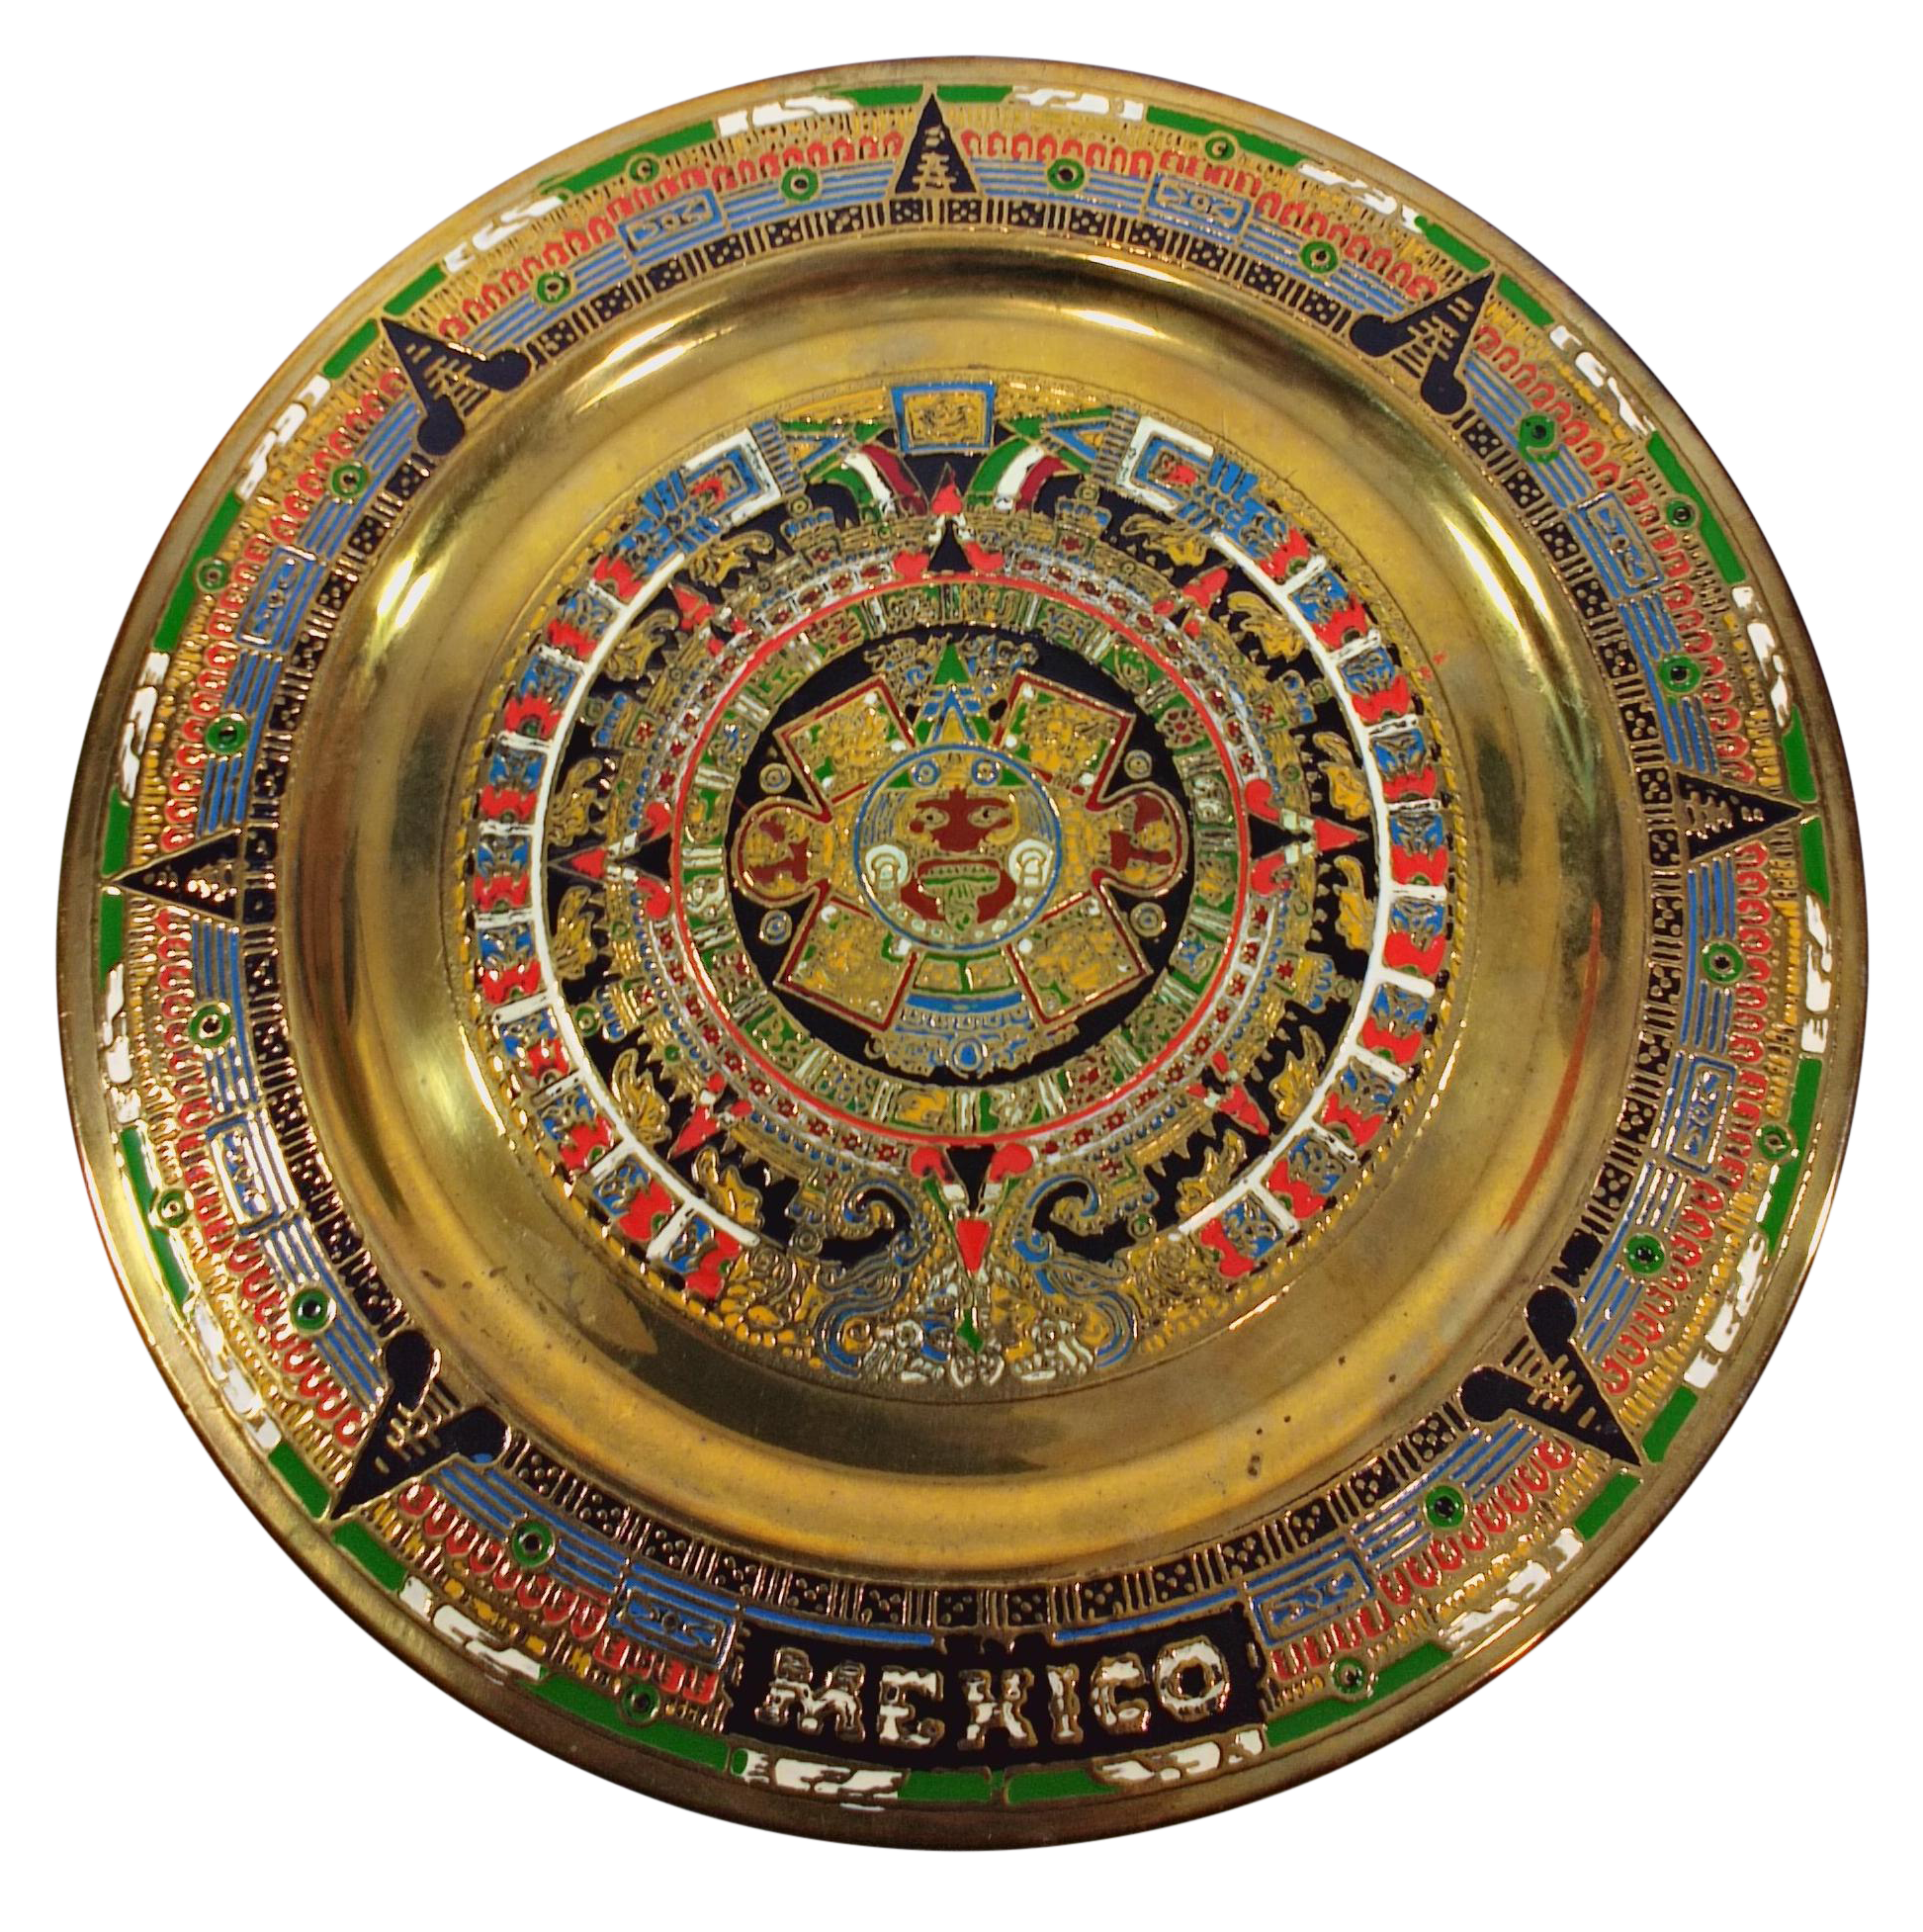 sc 1 st  Chairish & Mexican Aztec Mayan Brass Wall Plate/Catchall Dish | Chairish